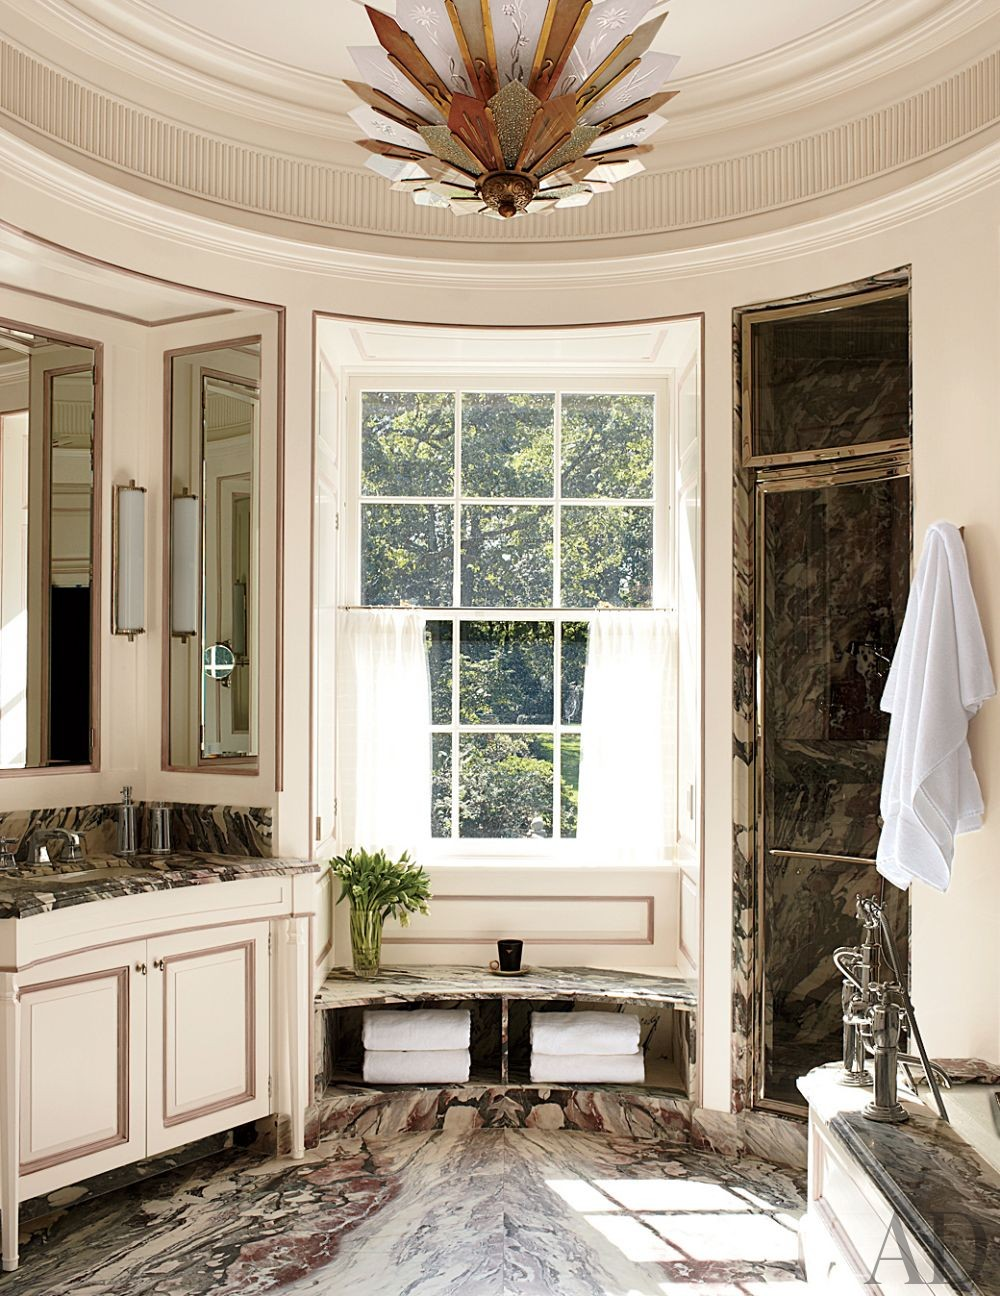 Traditional Bathroom by S.R. Gambrel Inc. and Oliver Cope Architect in Old Westbury, New York